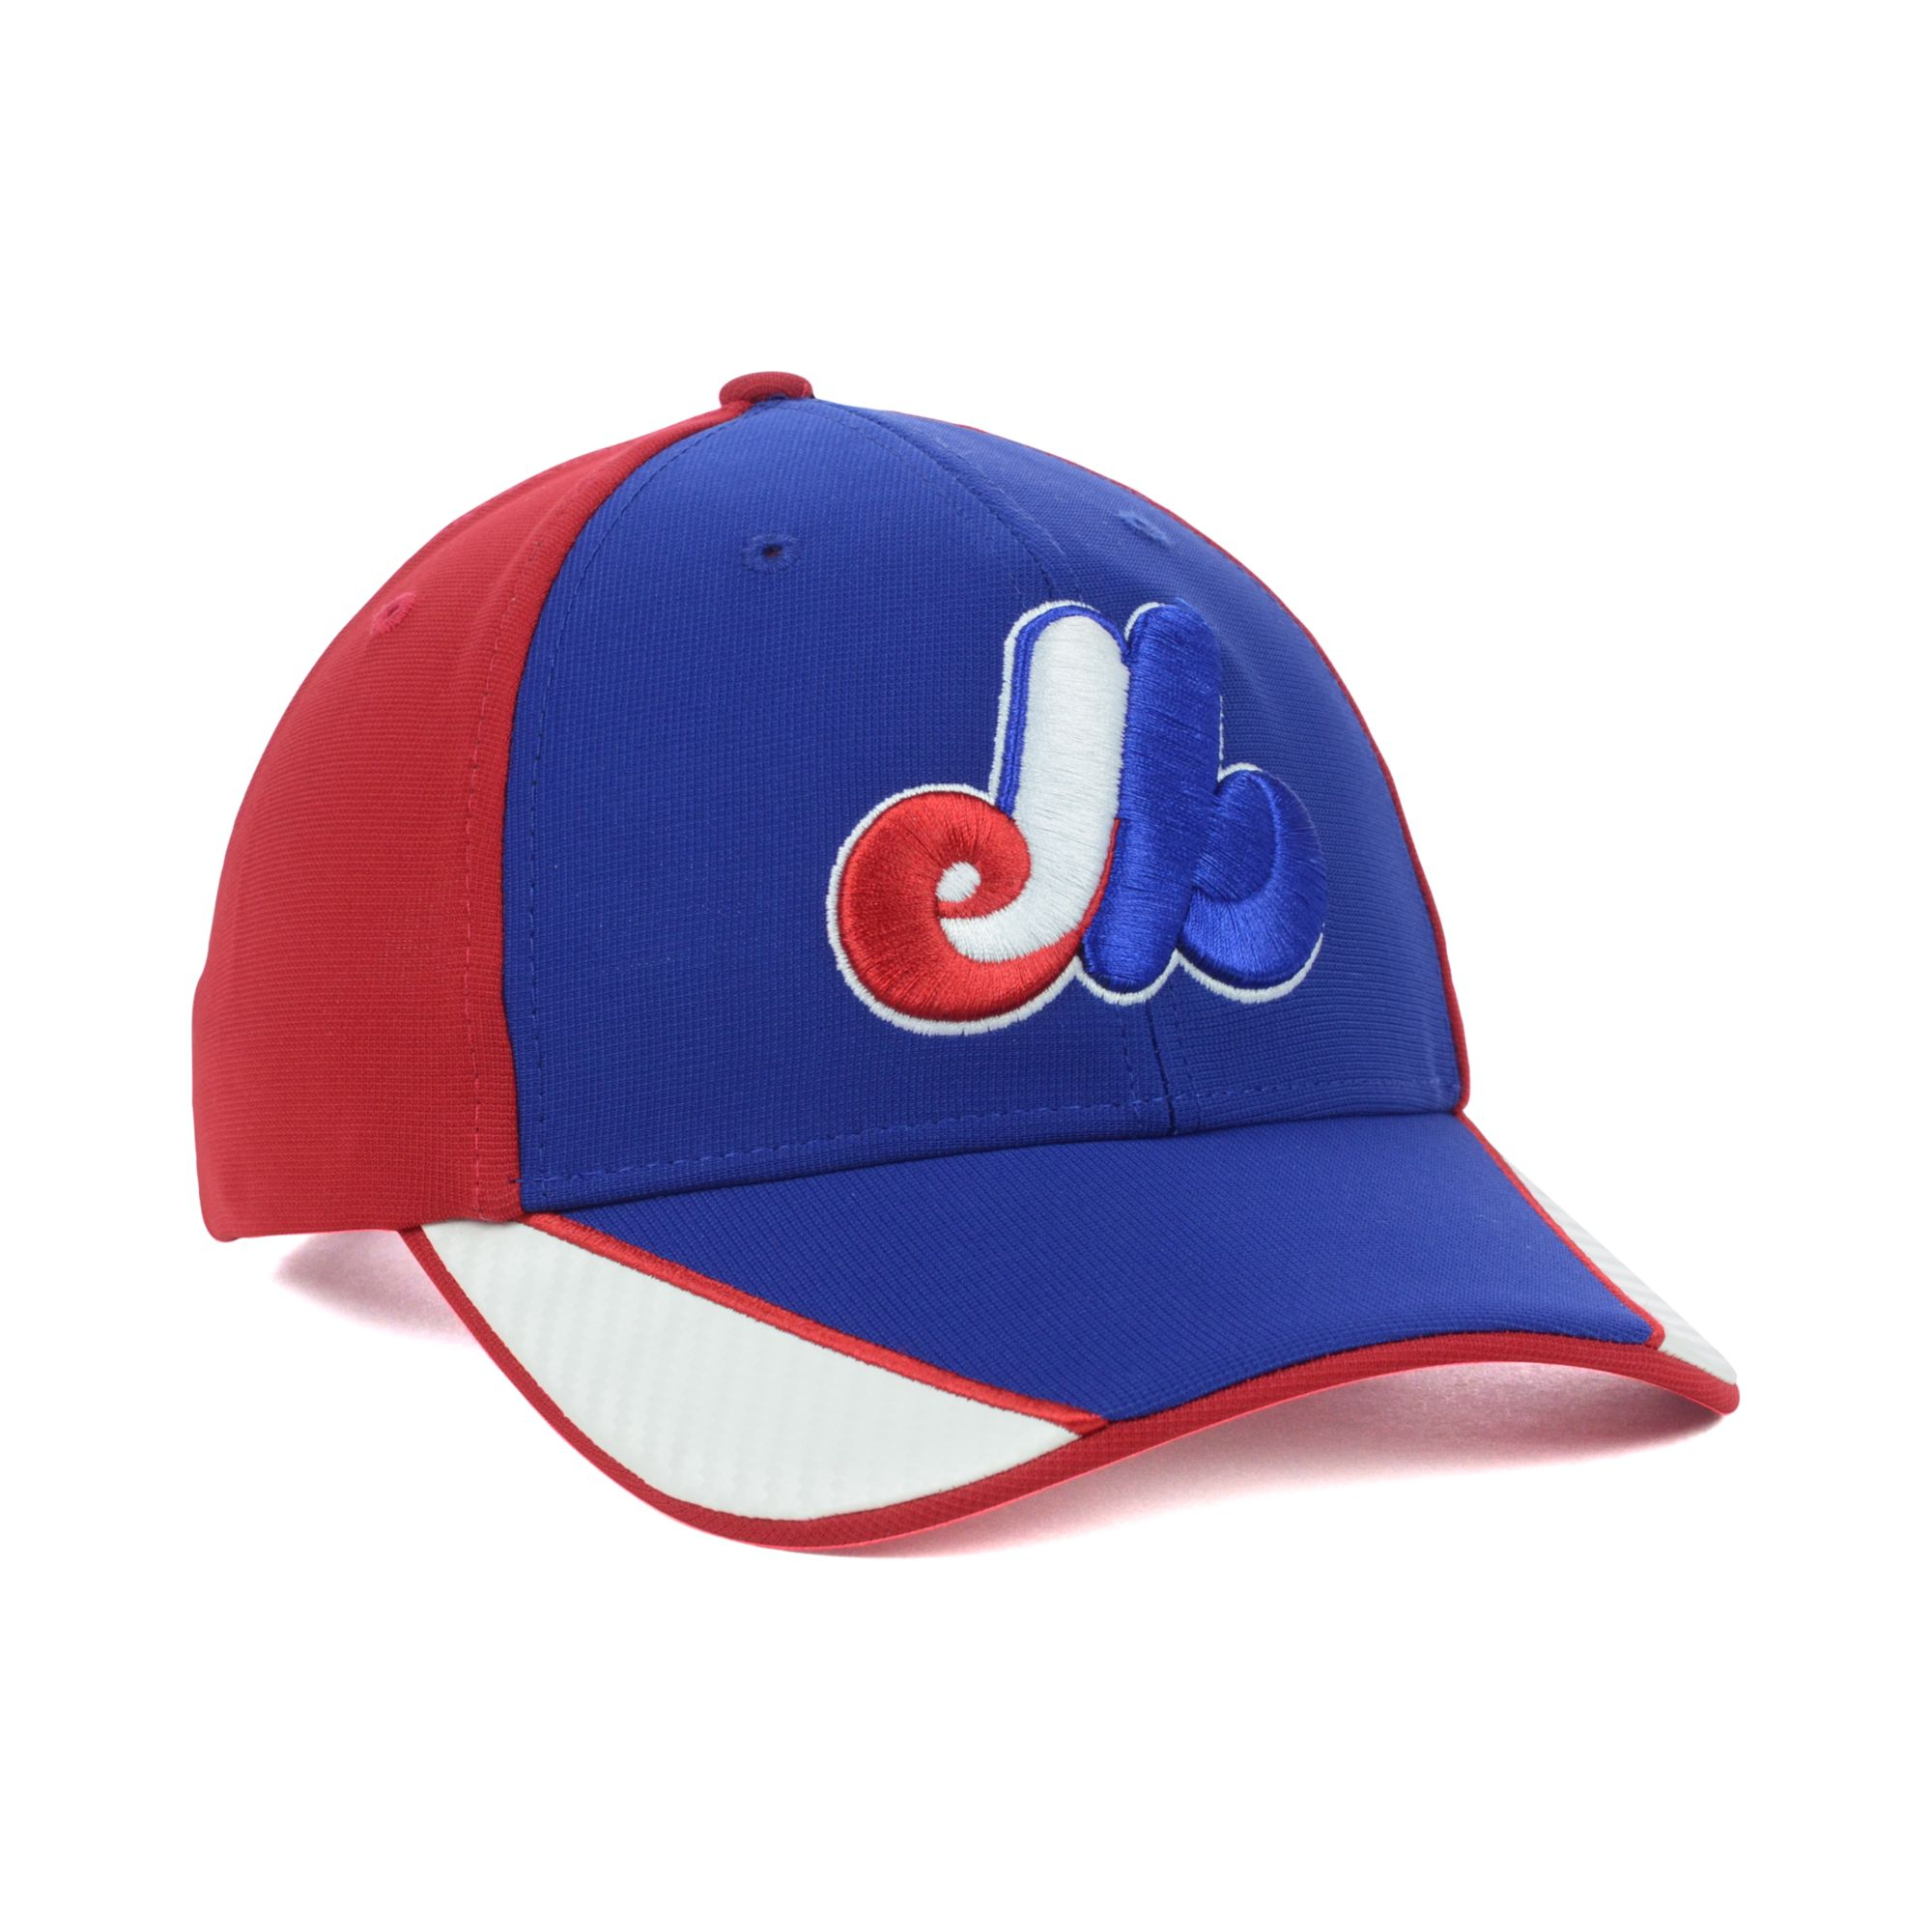 307b6ee070a Lyst - 47 Brand Montreal Expos Mlb Coldstrom Cap in Blue for Men